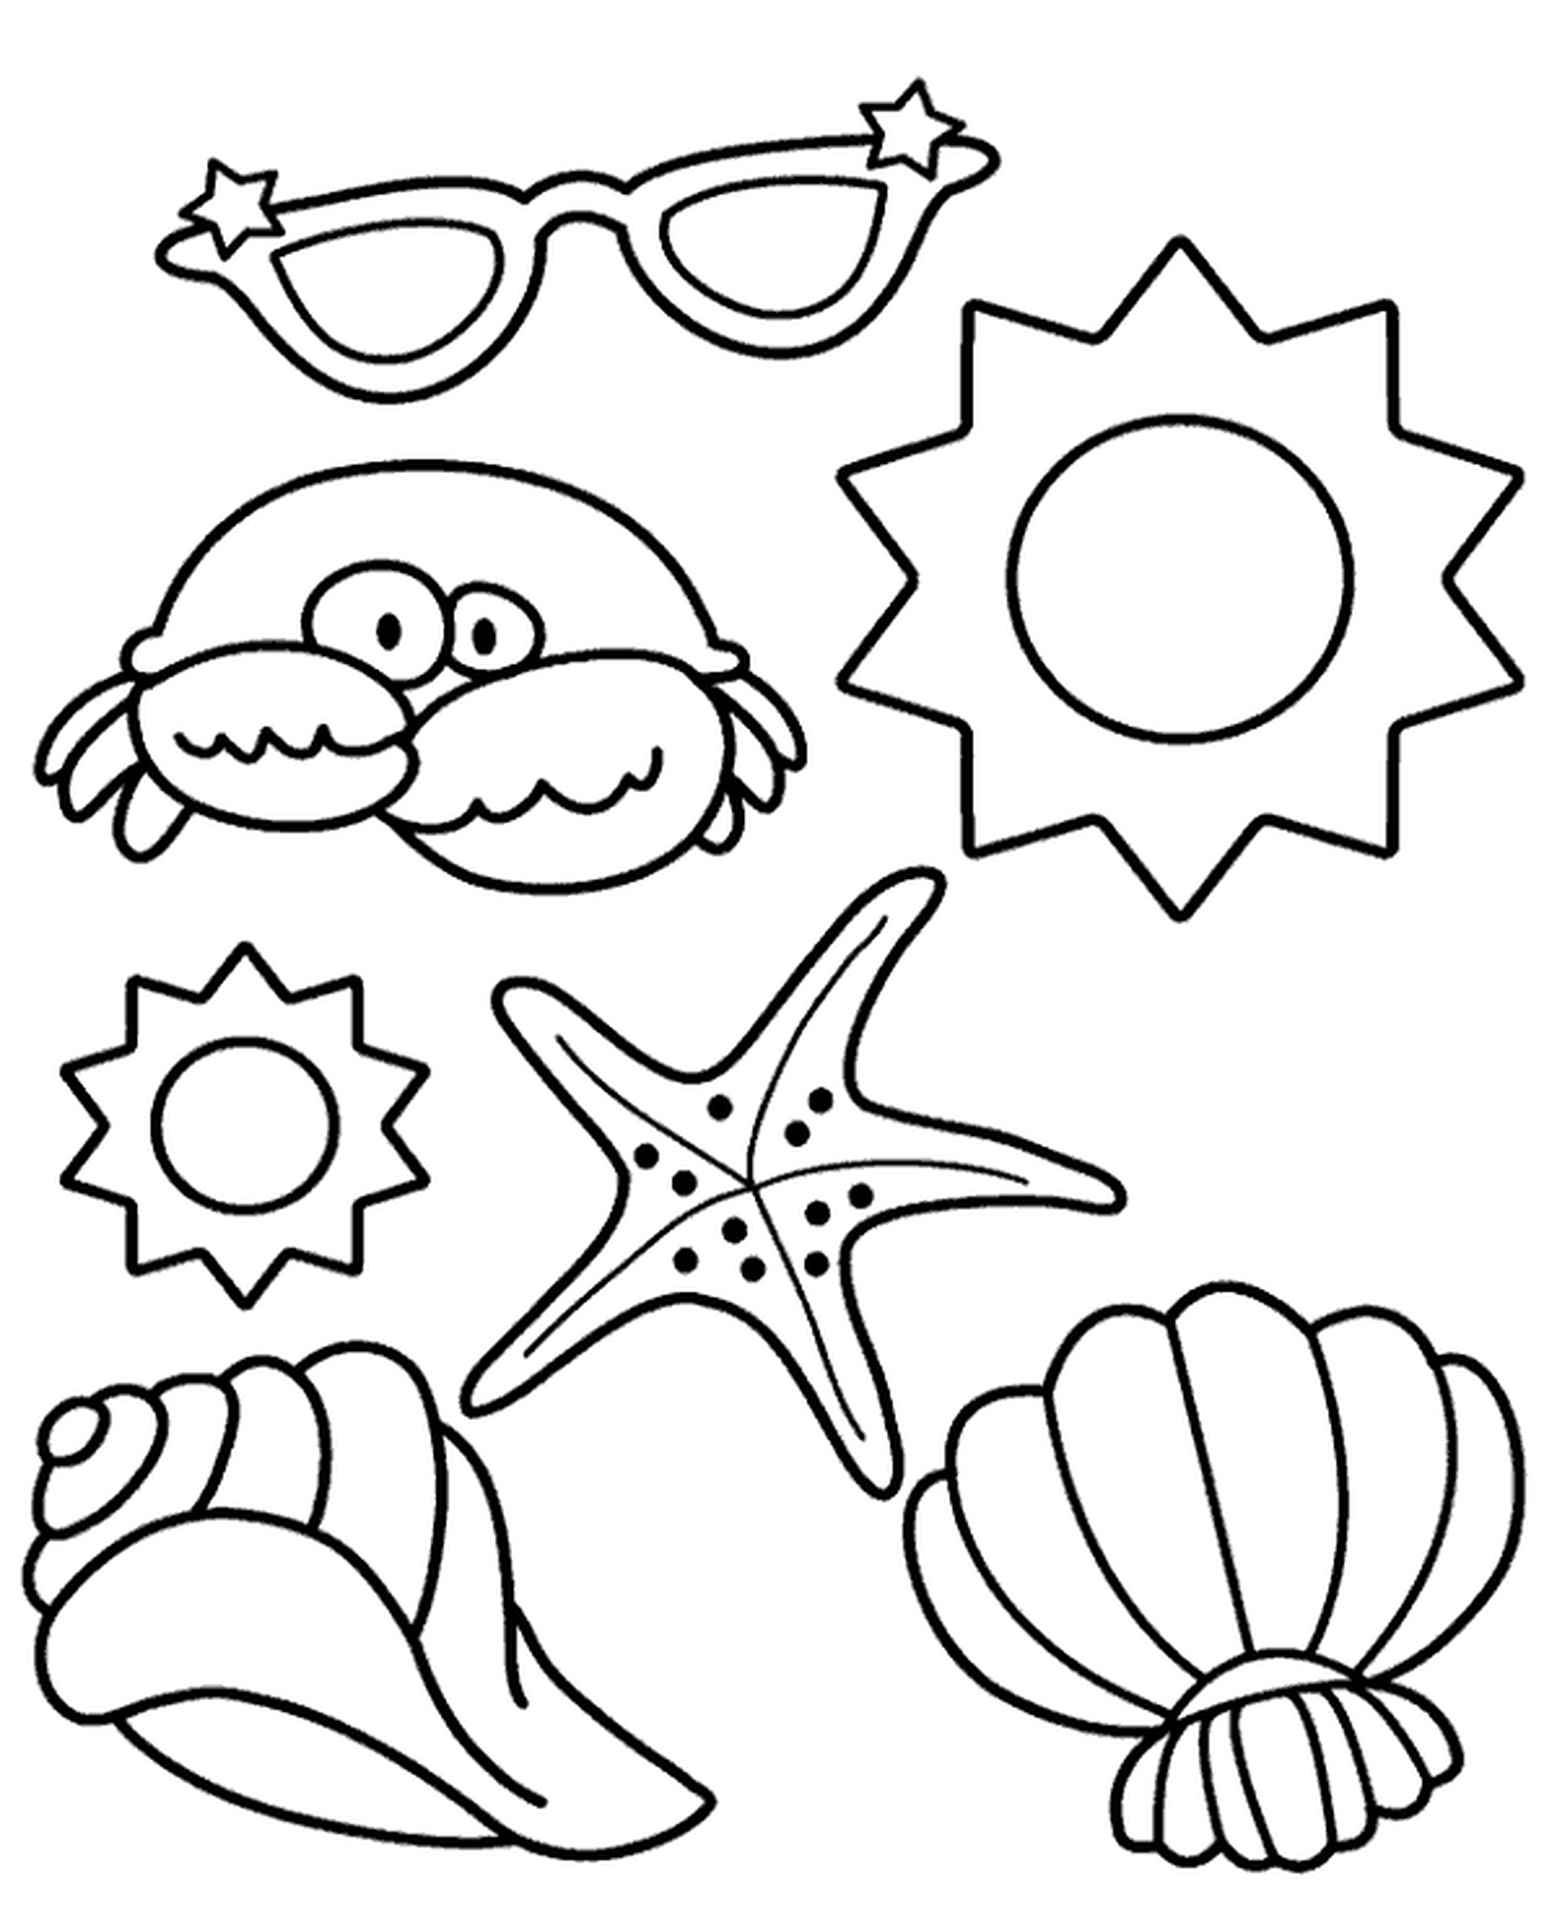 Summer Coloring Picture For Preschoolers